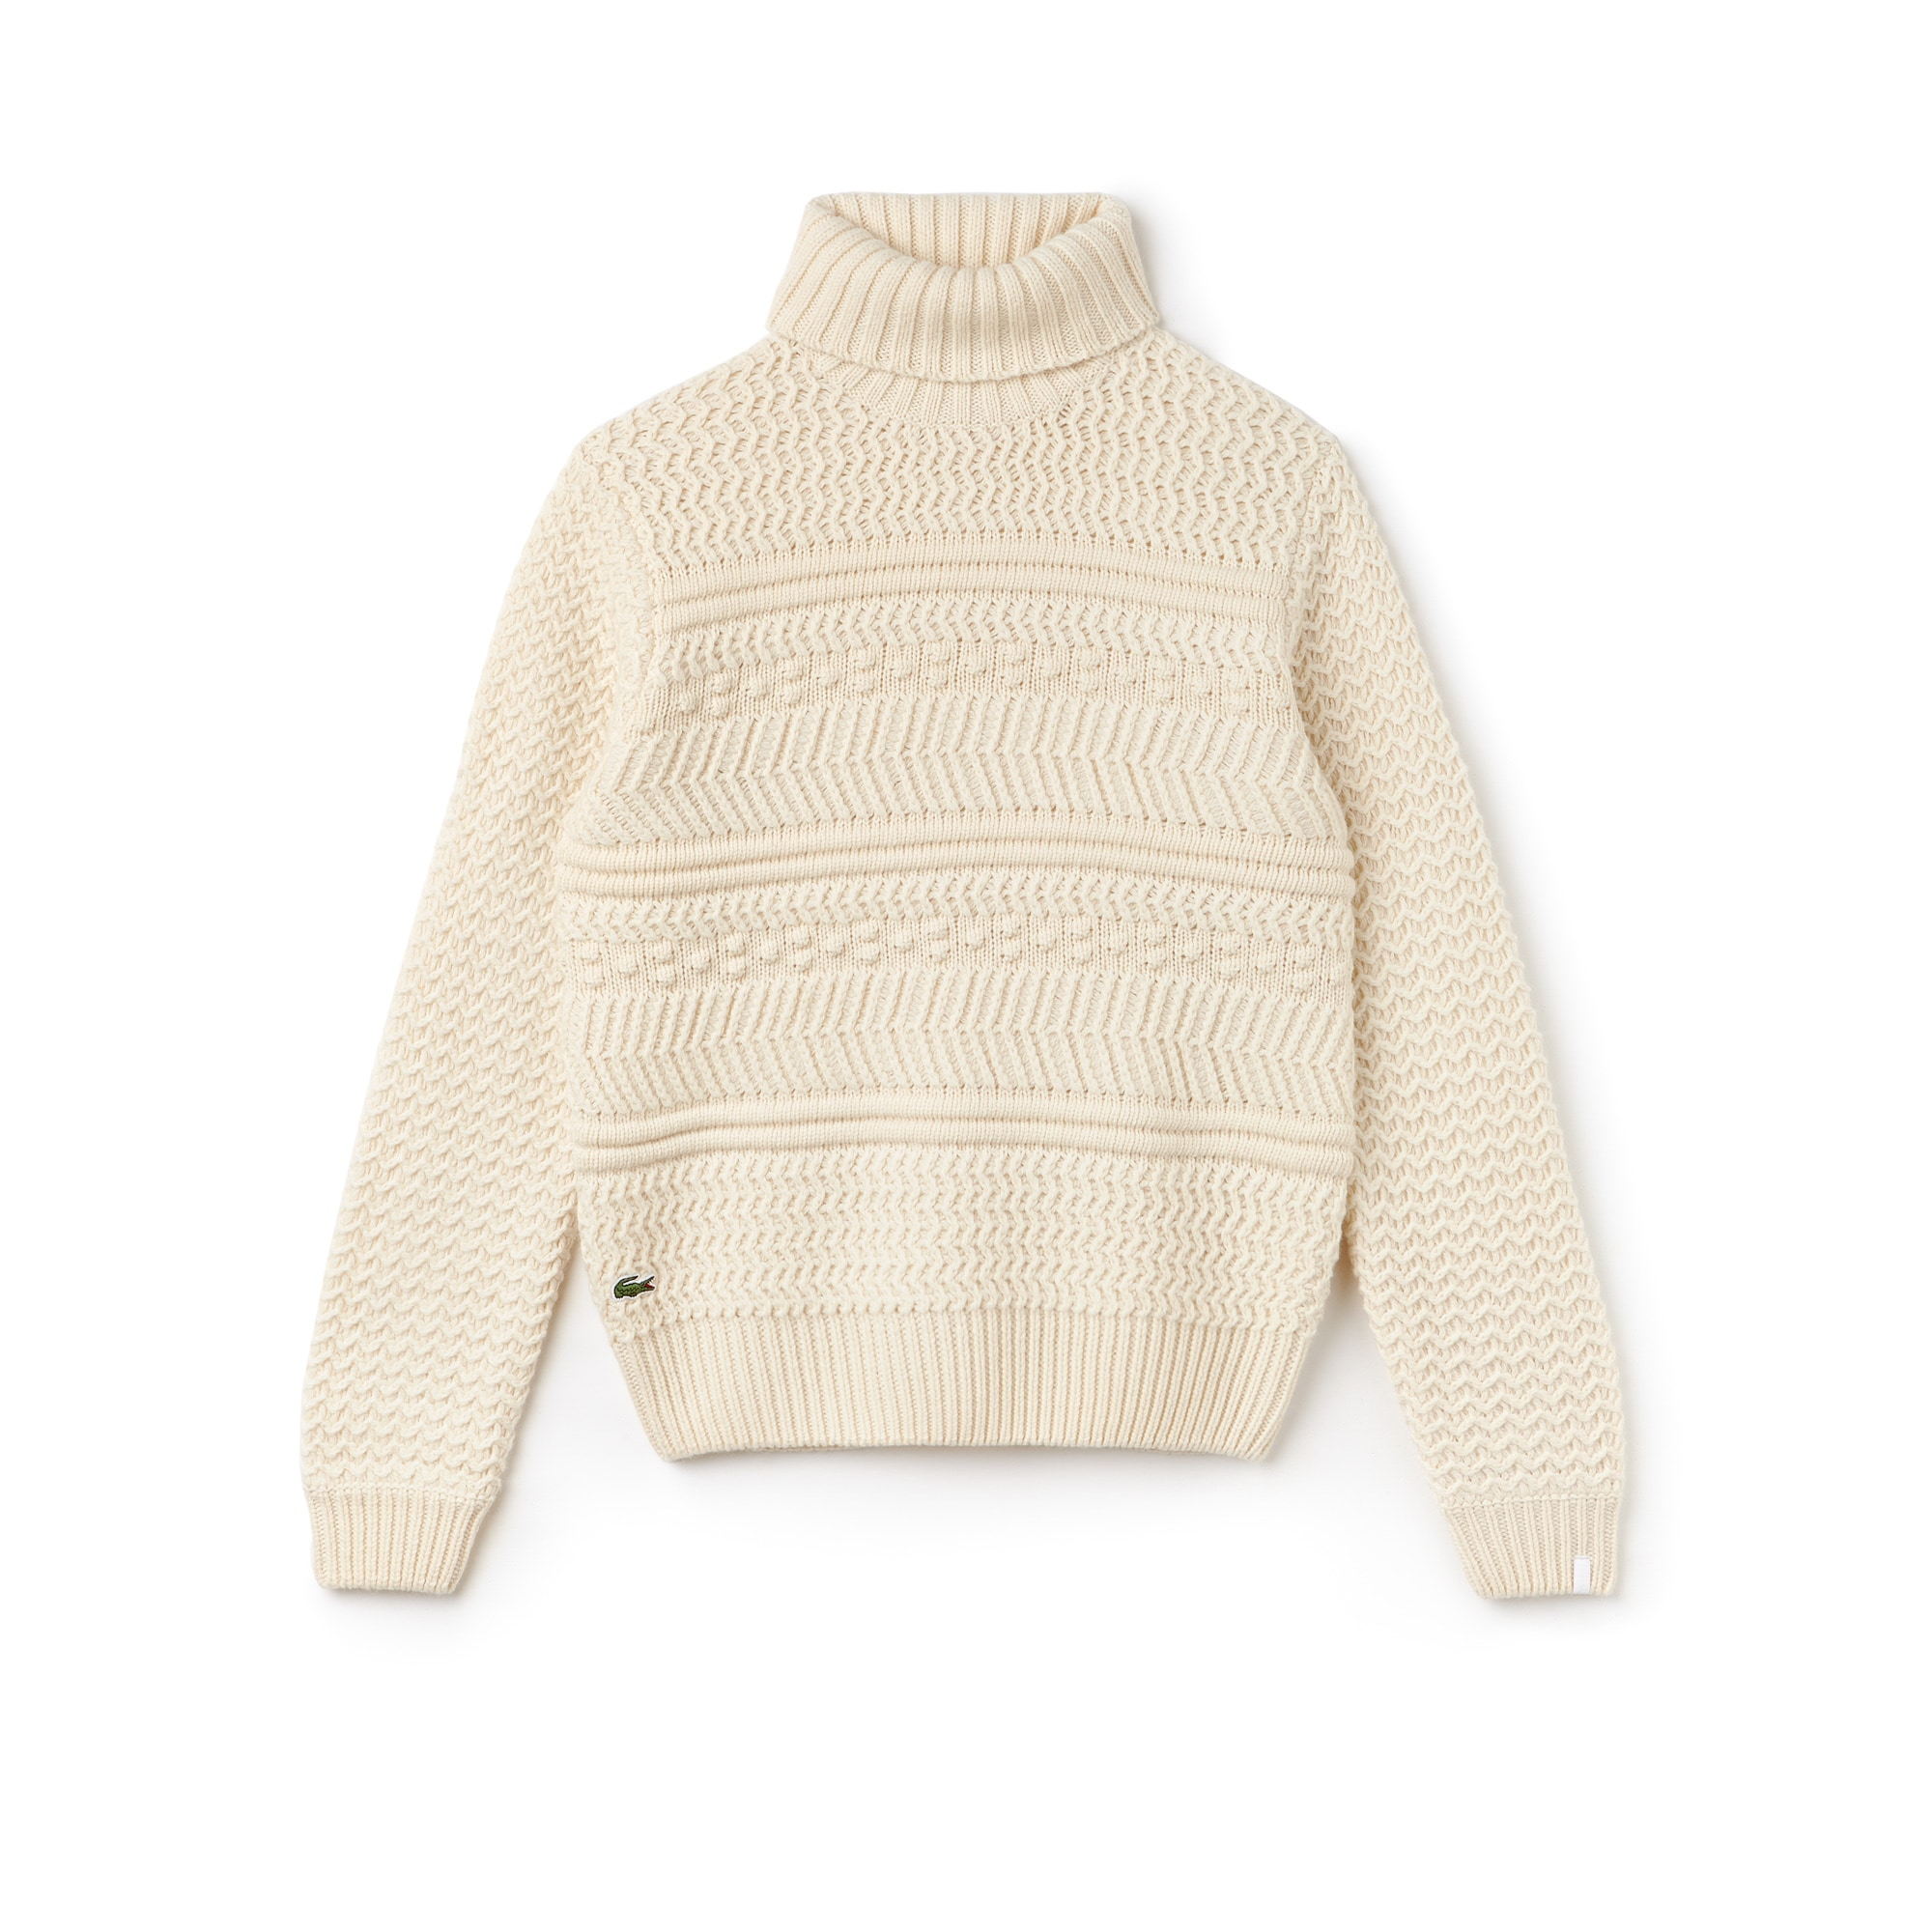 Men's LIVE Cable Knit Wool Turtleneck Sweater